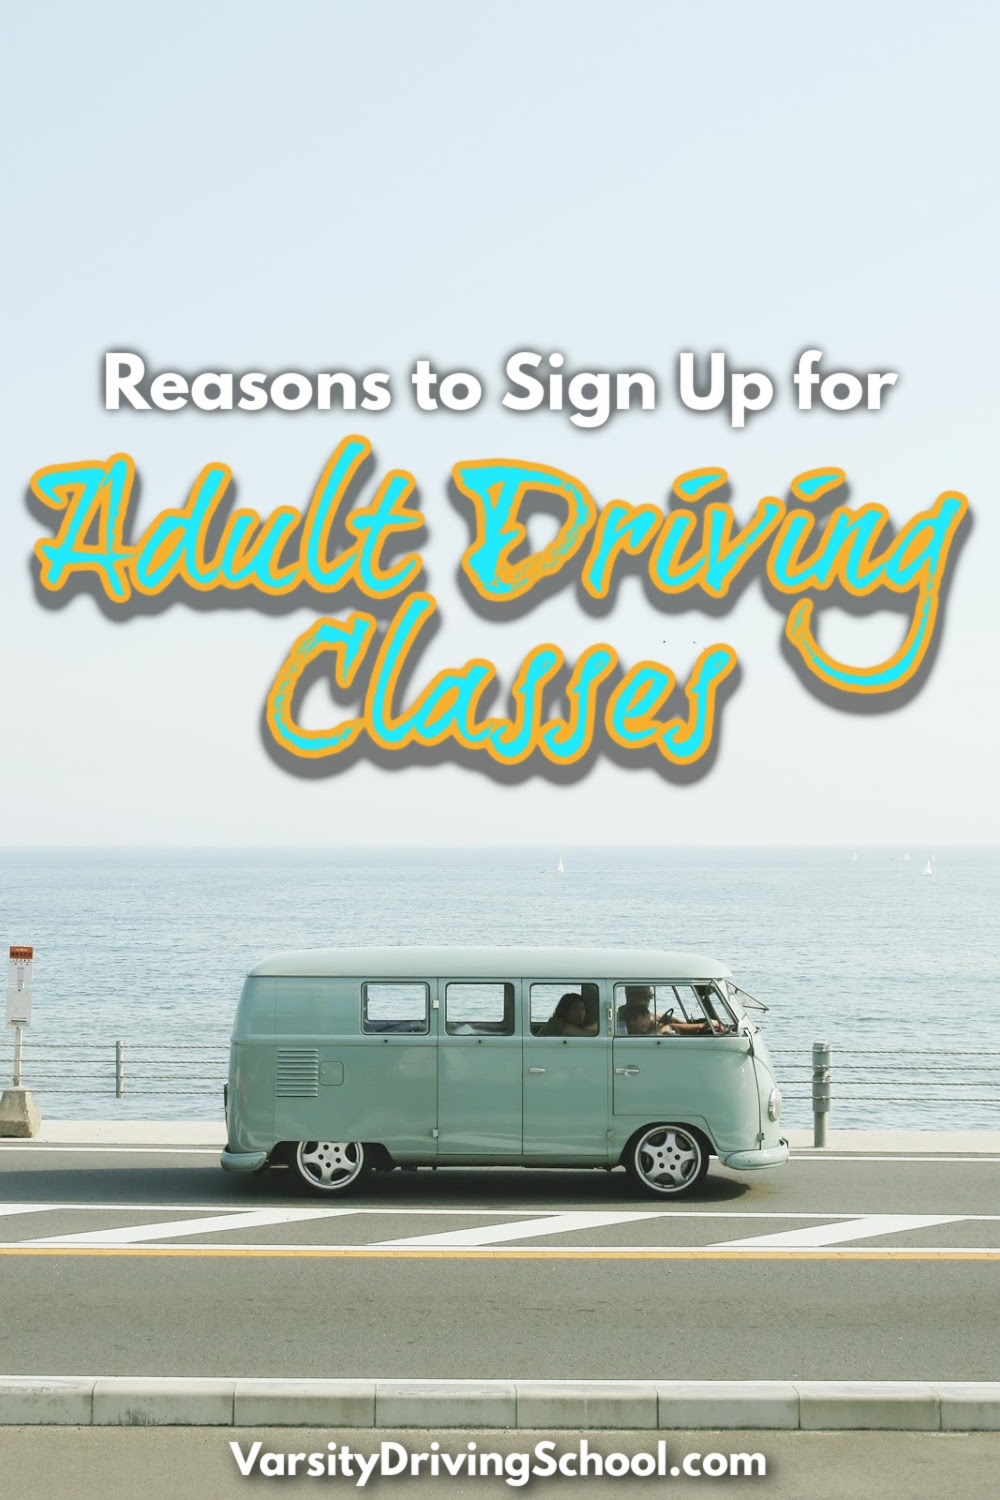 People have several reasons to sign up for adult driving classes and Varsity Driving Academy is the best option no matter the reason.